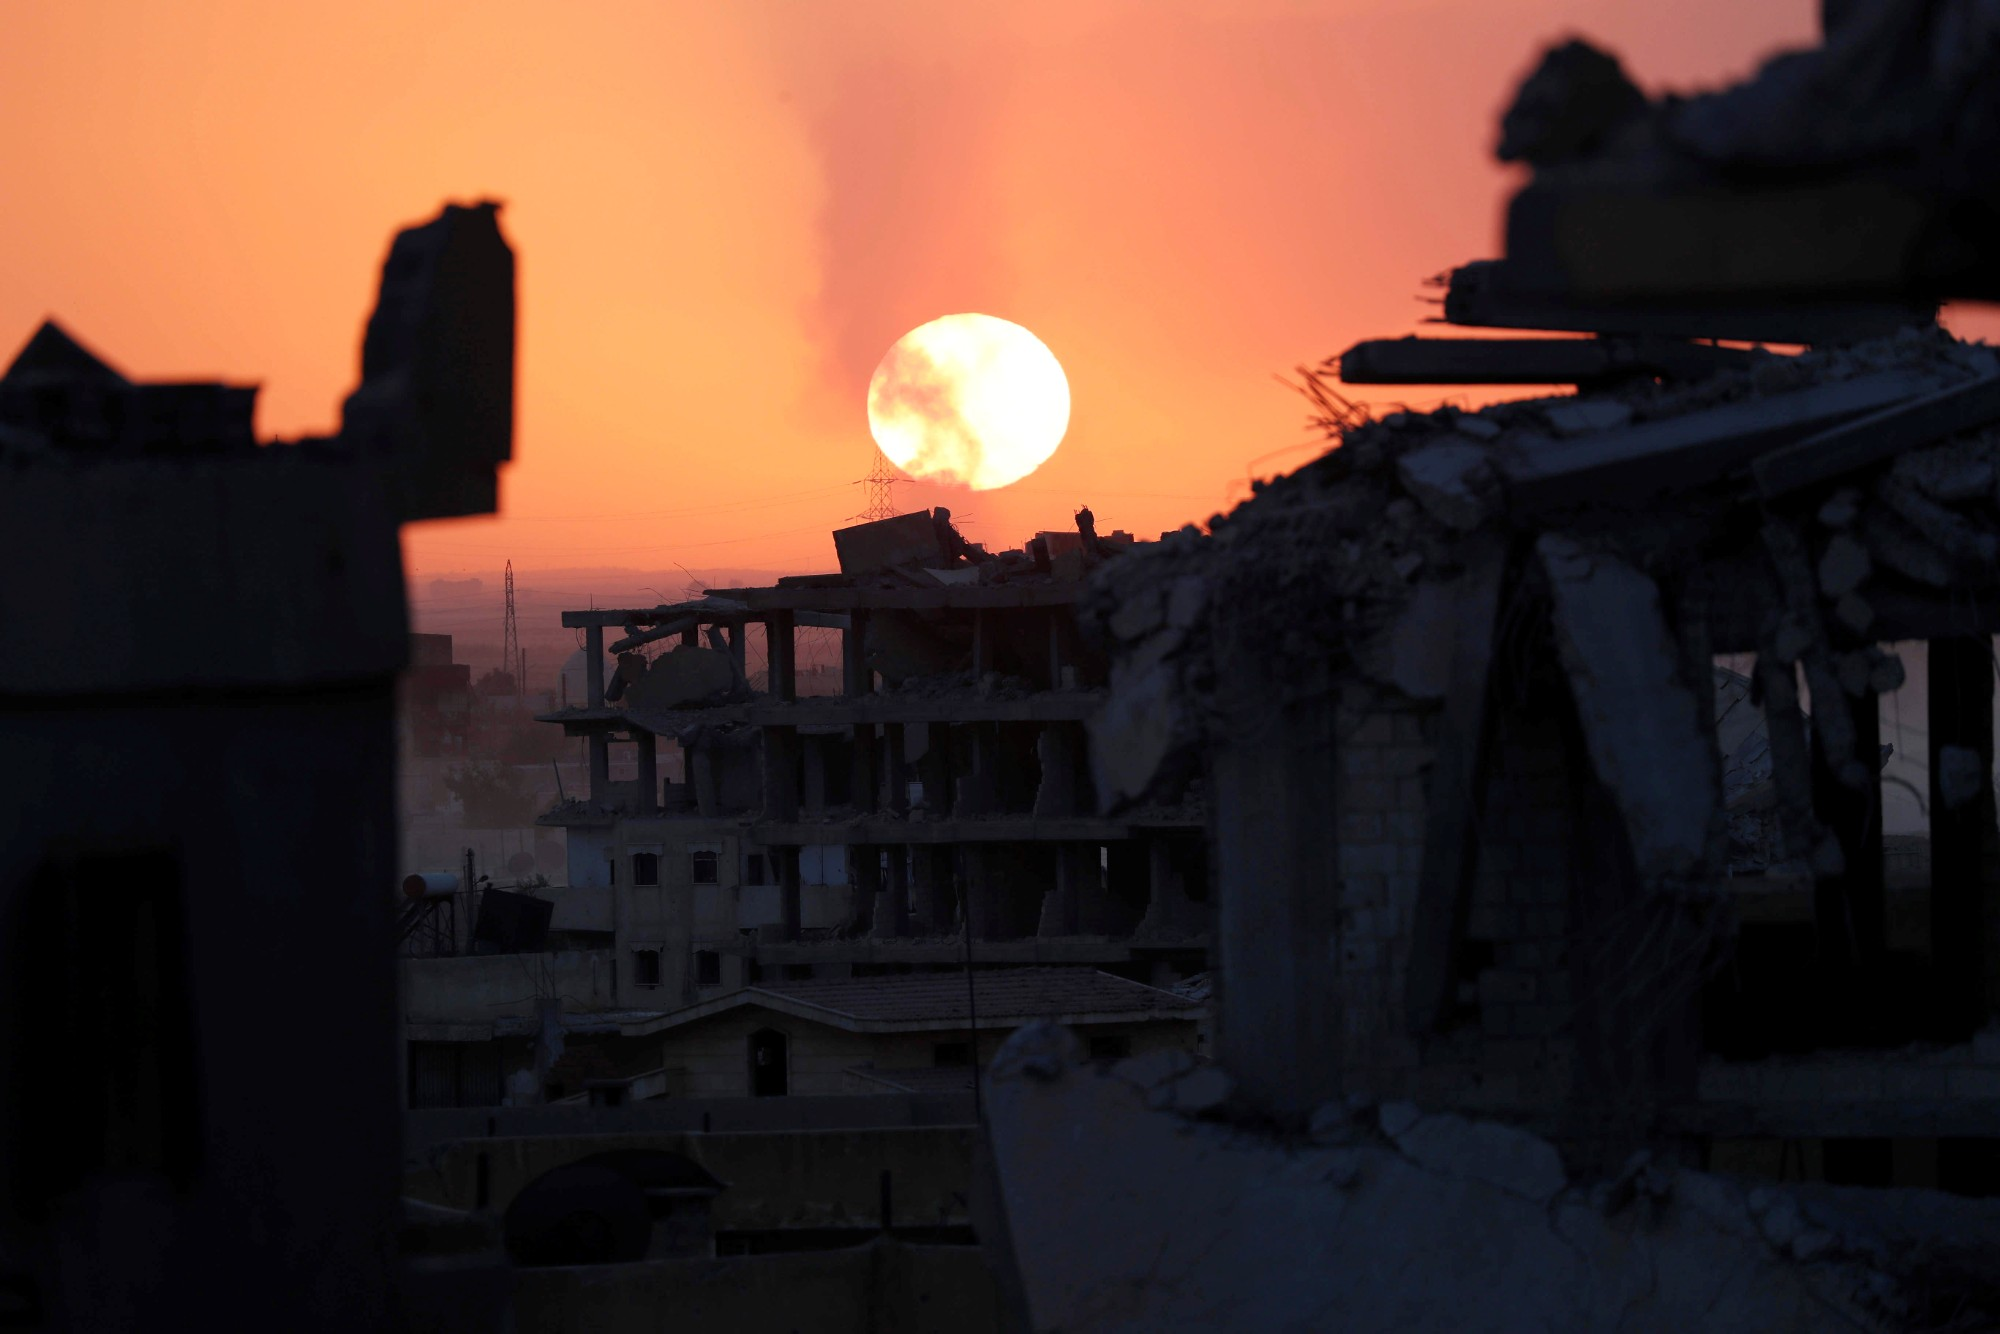 Destroyed buildings during sunset at the frontline in Raqqa, Syria, October 6, 2017, photo by Erik de Castro/Reuters